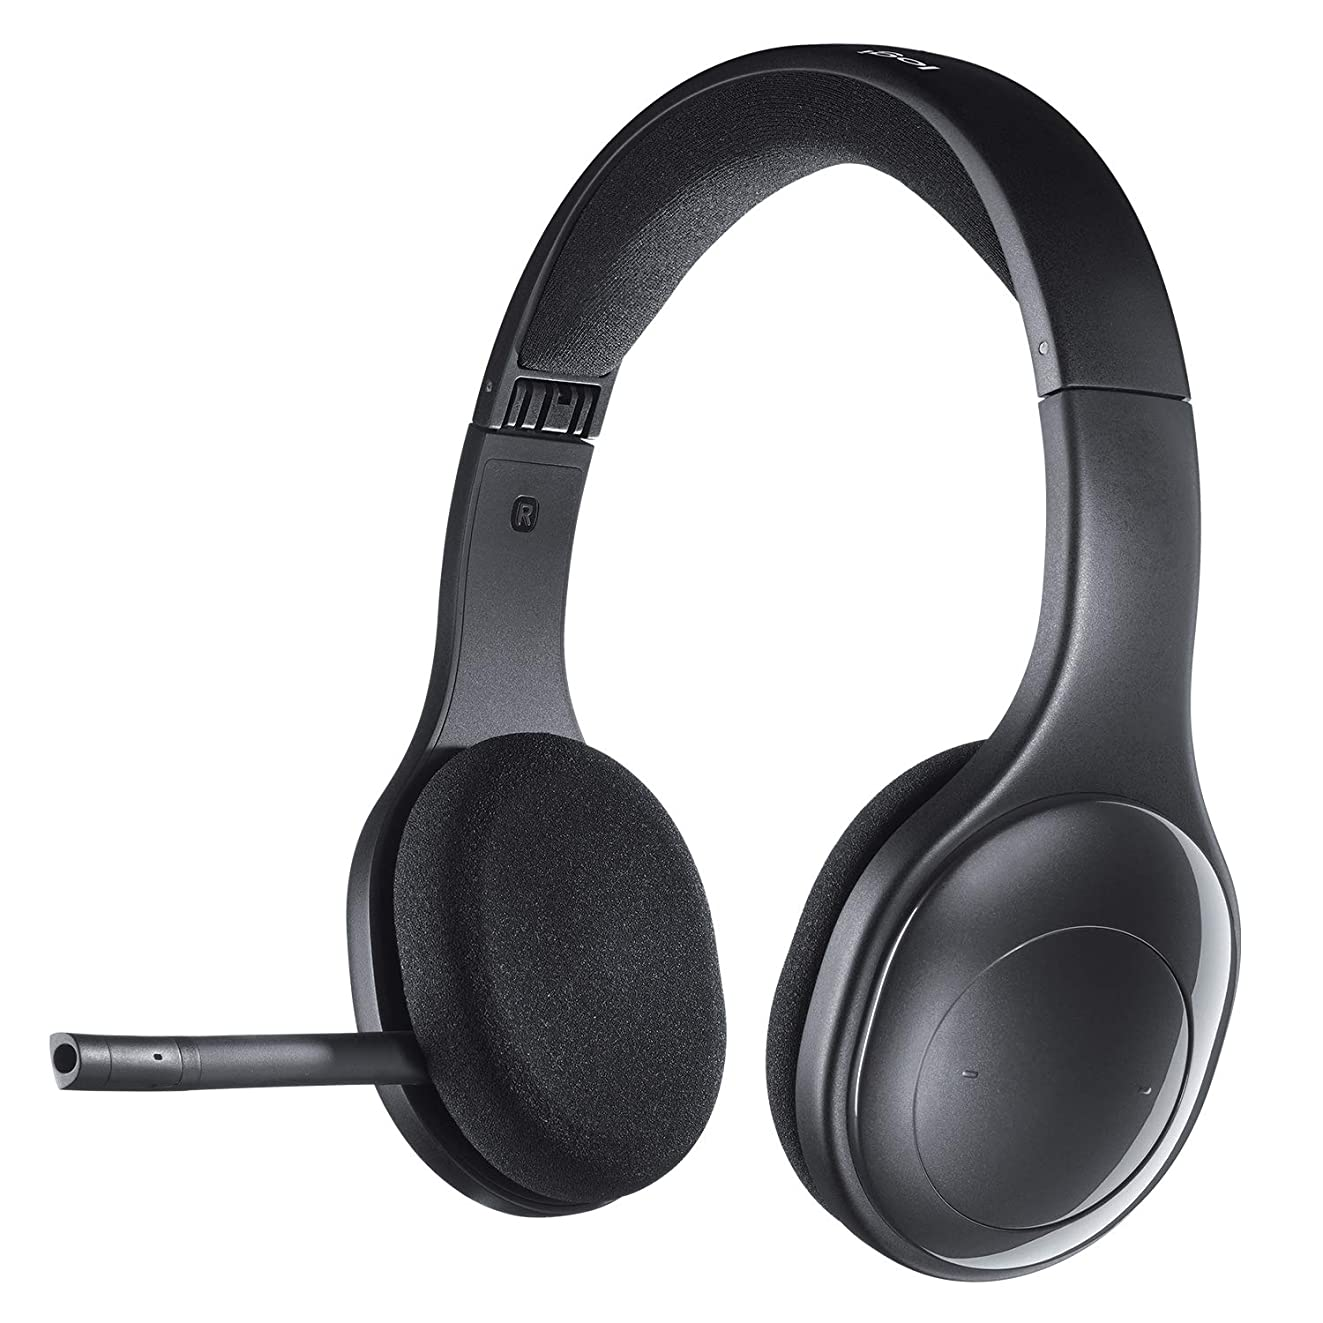 Logitech H800 Bluetooth Wireless Headset with Mic for PC, Tablets and Smartphones